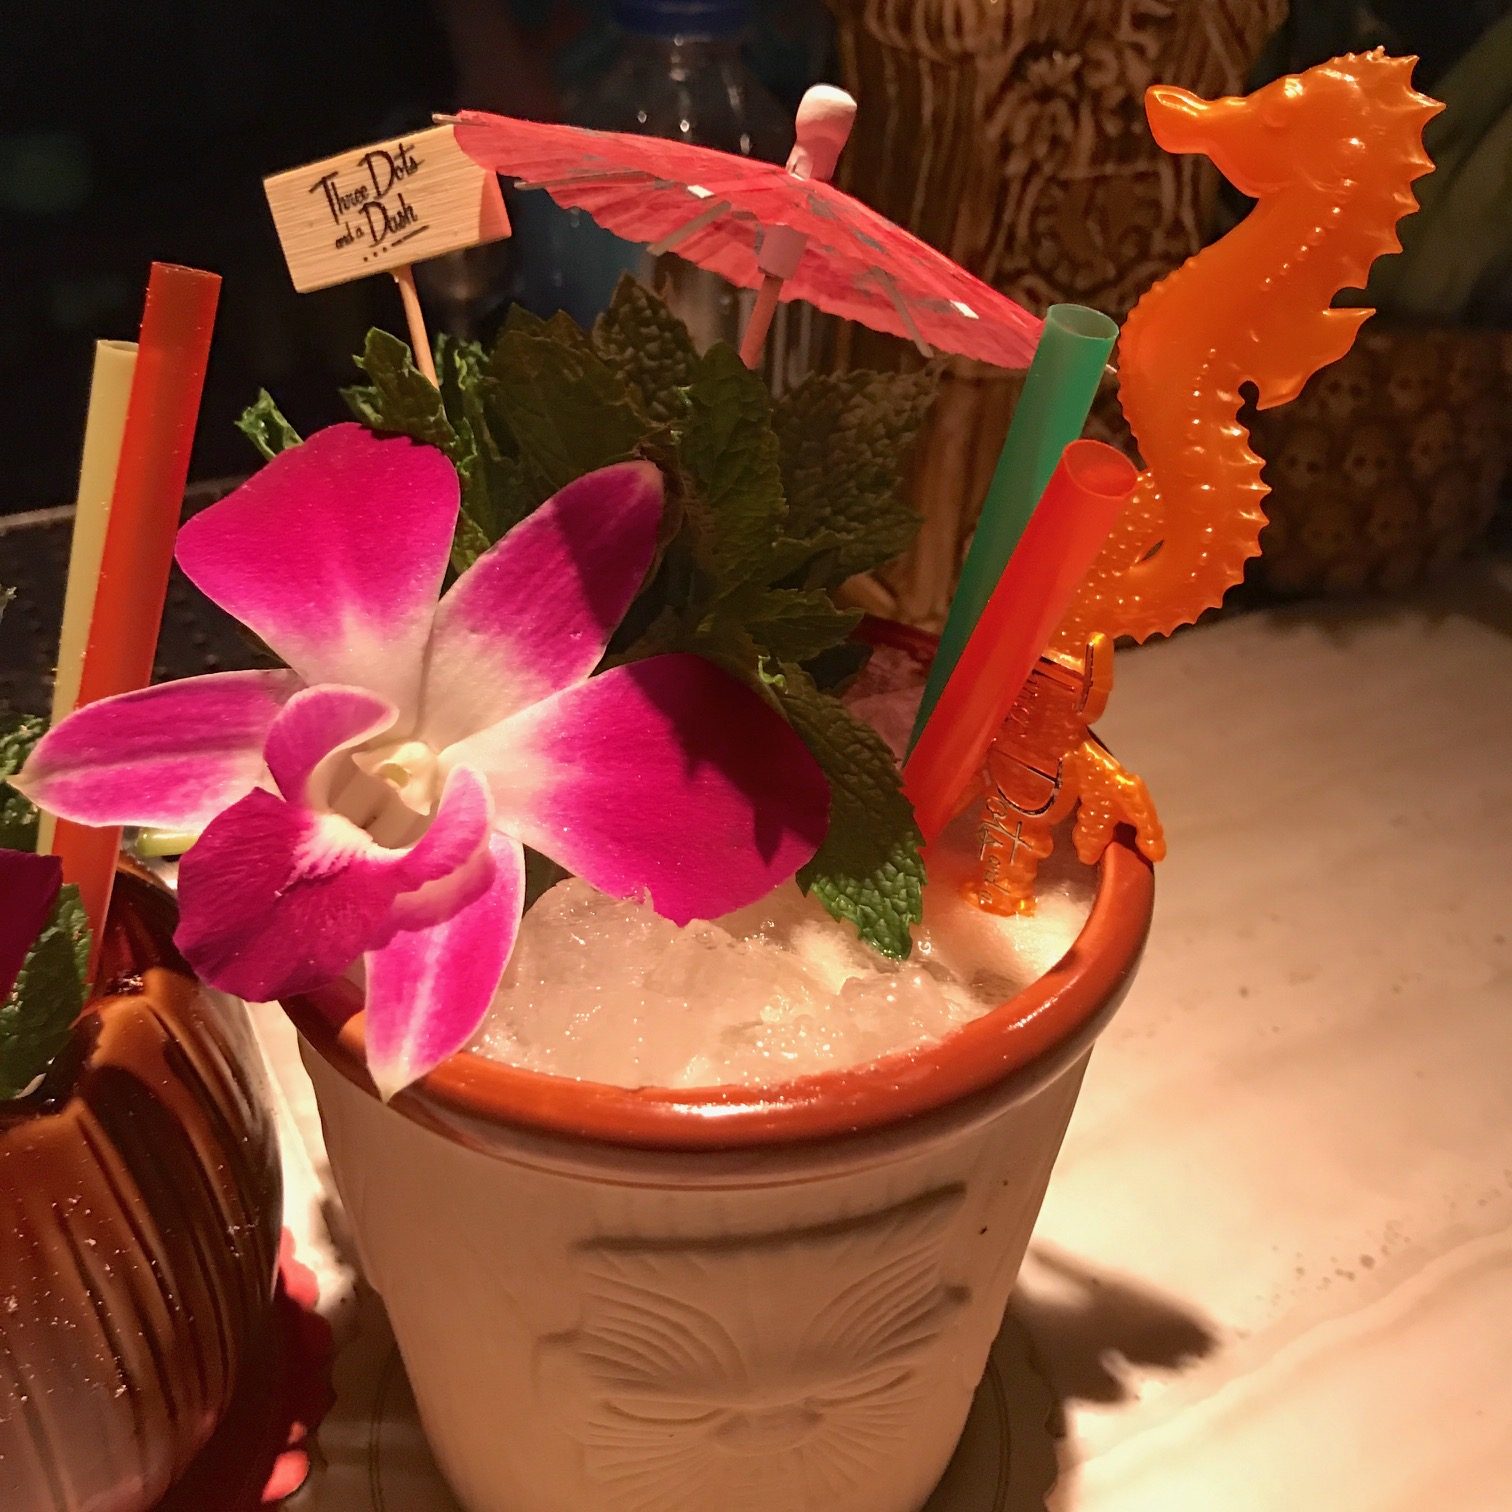 The Best Tiki Swizzle Sticks Are Made By Royer